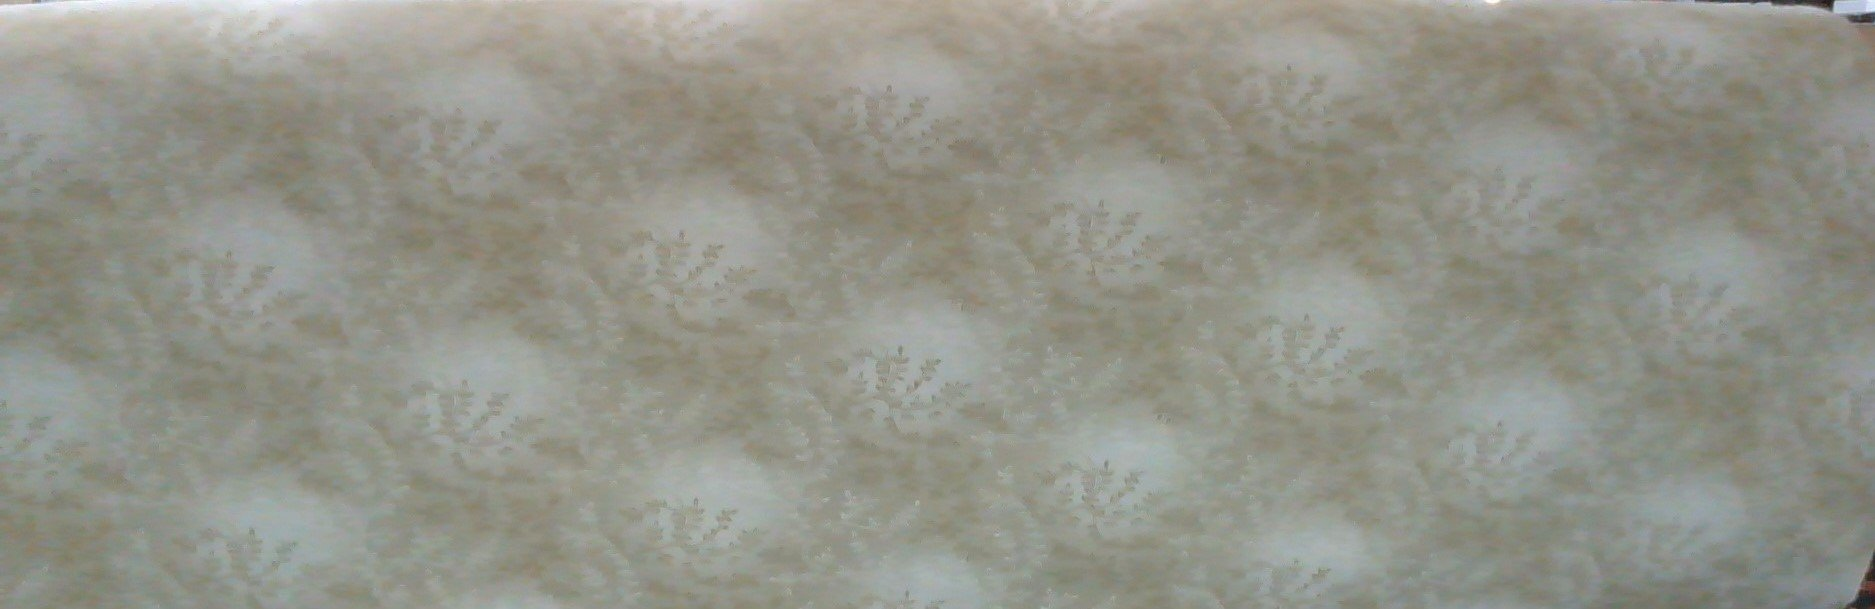 Choice Quilt Backing BD-47603-702 Light Beige Leaves 108